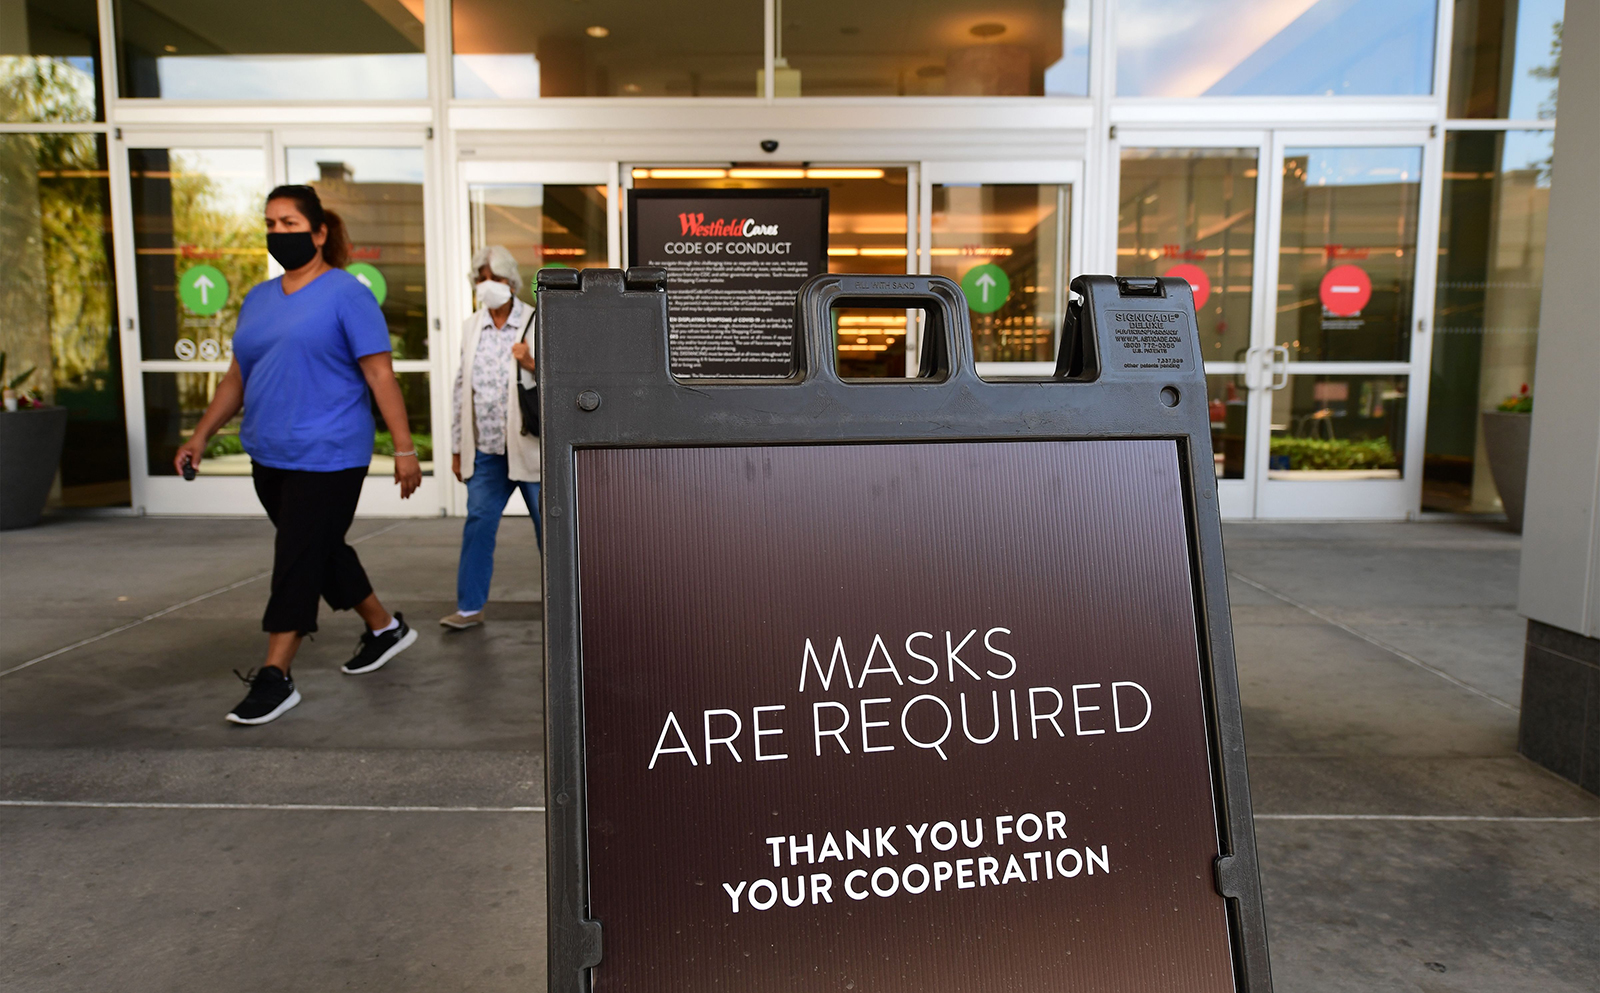 Women wearing face masks exit a shopping mall where a sign is posted at an entrance reminding people of the mask requirement Westfield Santa Anita shopping mall in Arcadia, California, on June 12.